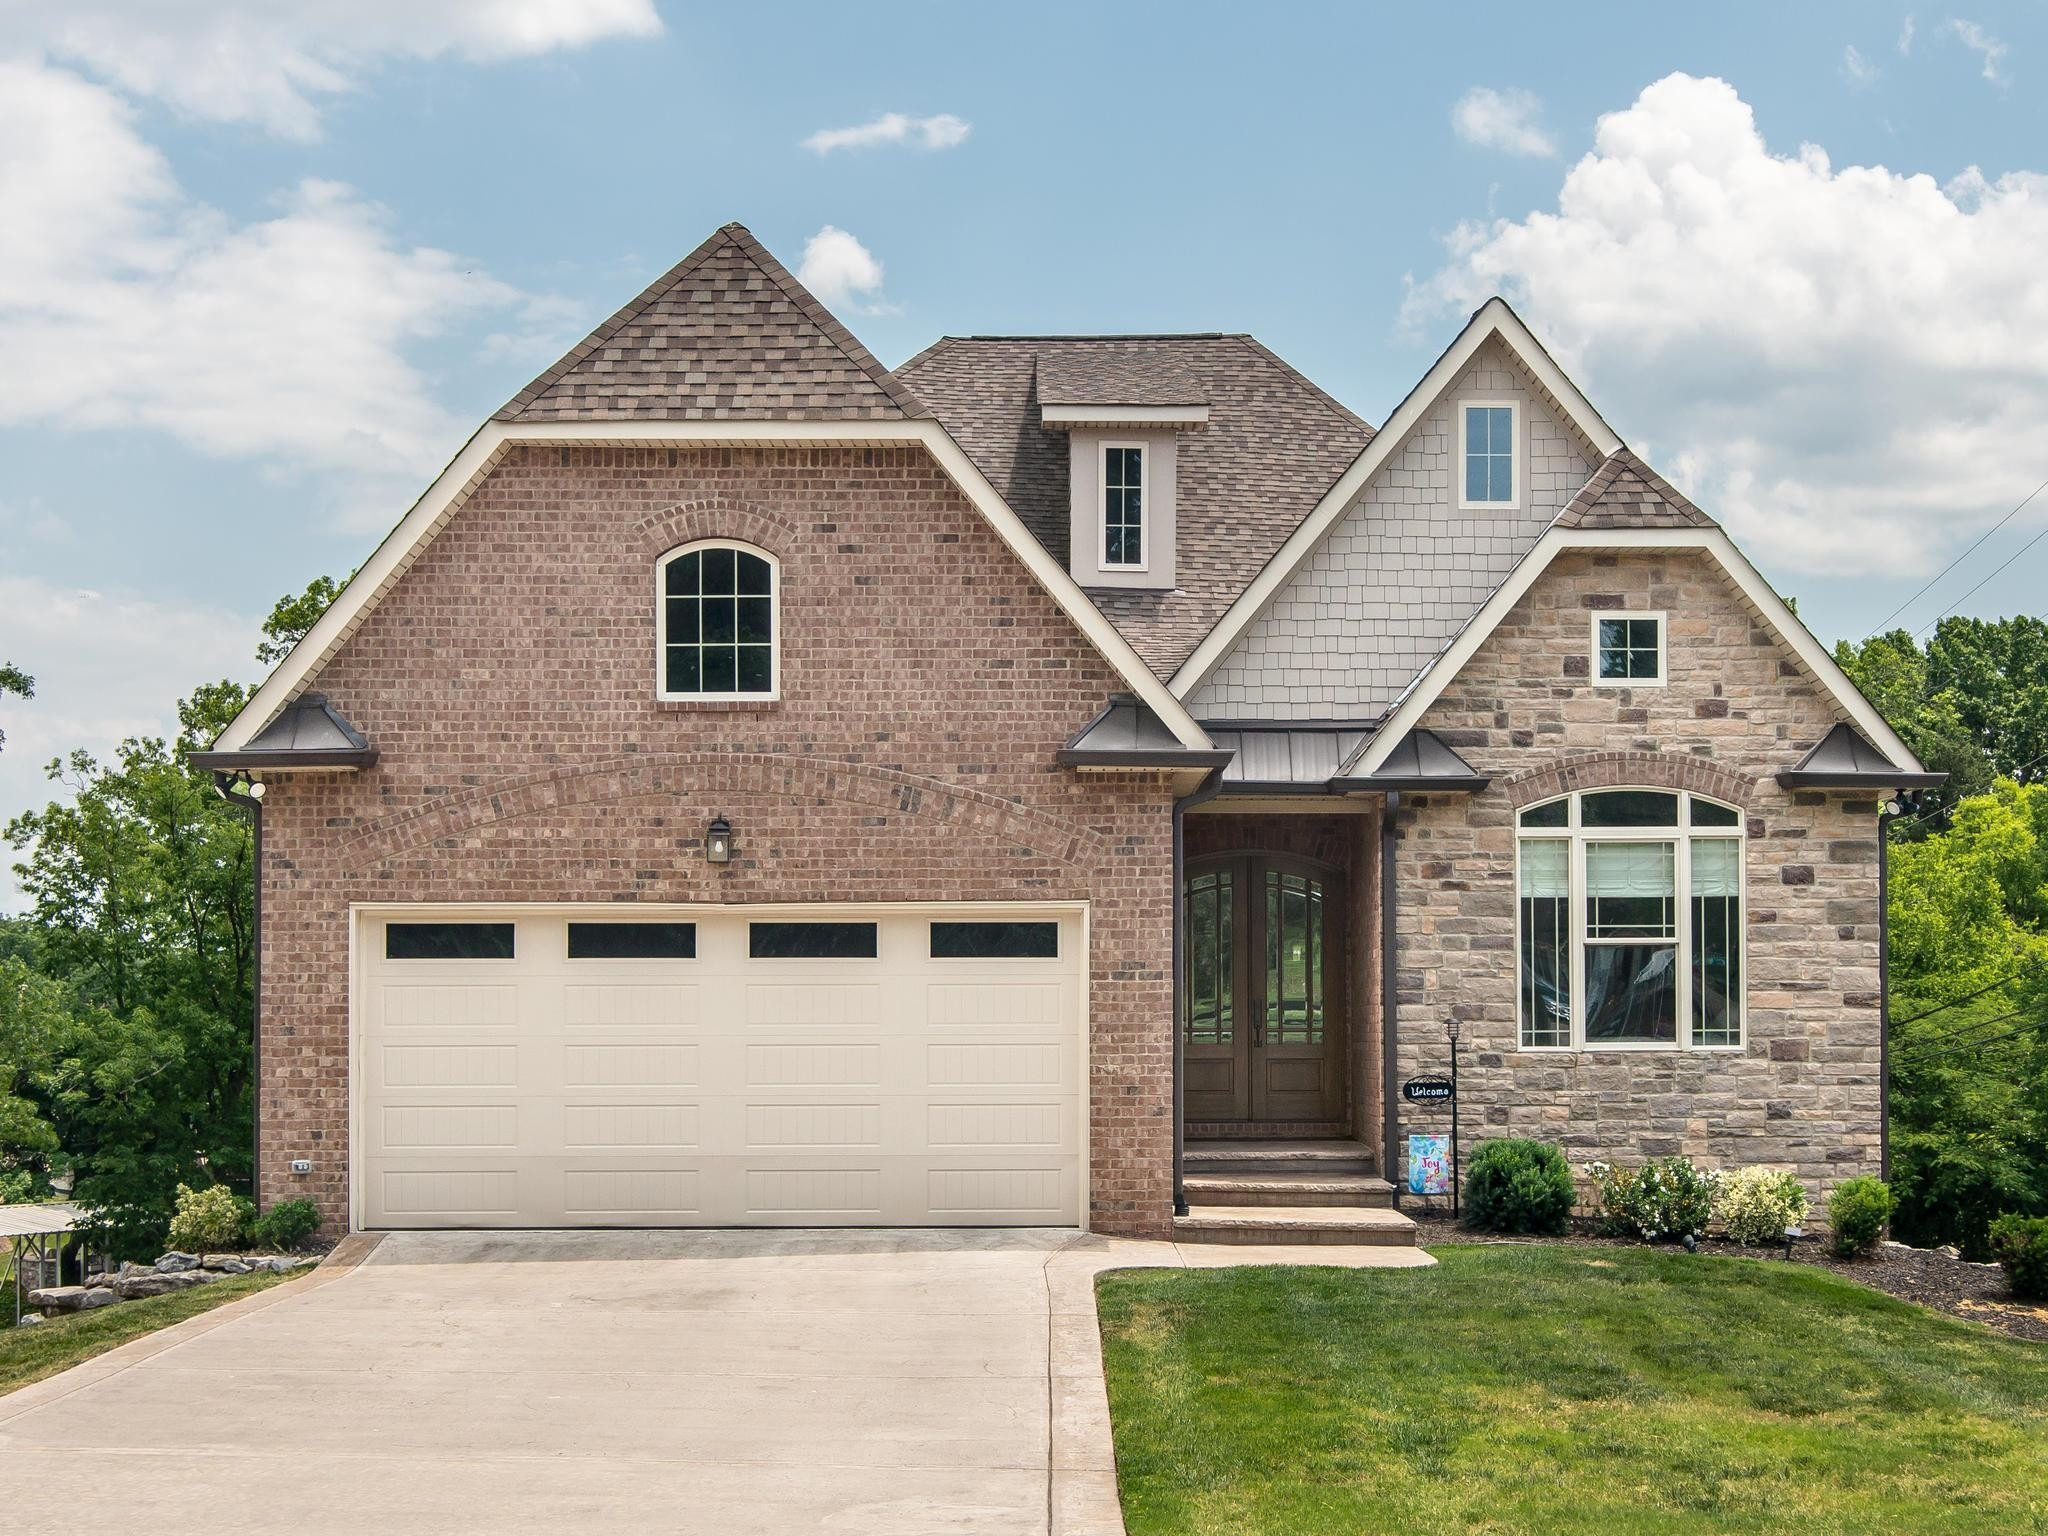 Bradley Parke Subdivision Homes for Sale Old Hickory TN